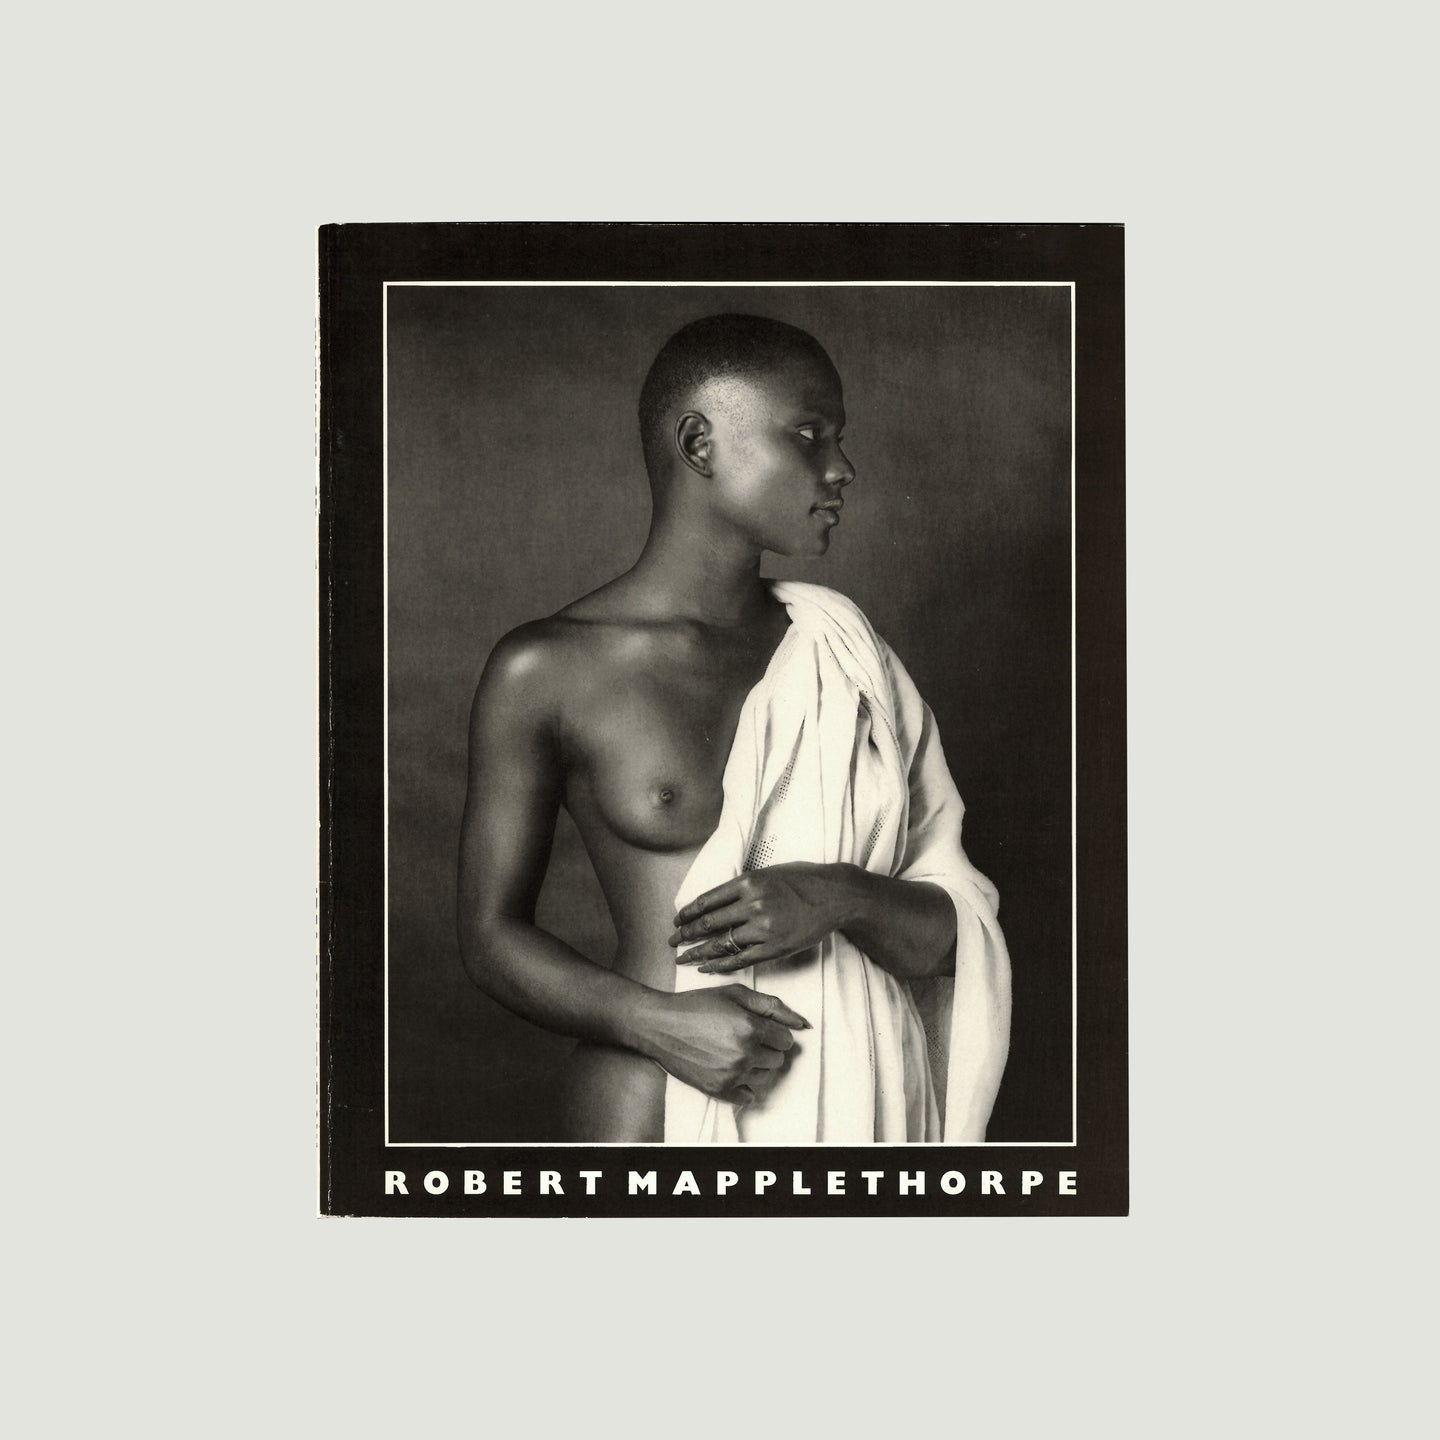 Robert Mapplethorpe Fotografie, curated by Germano Celant